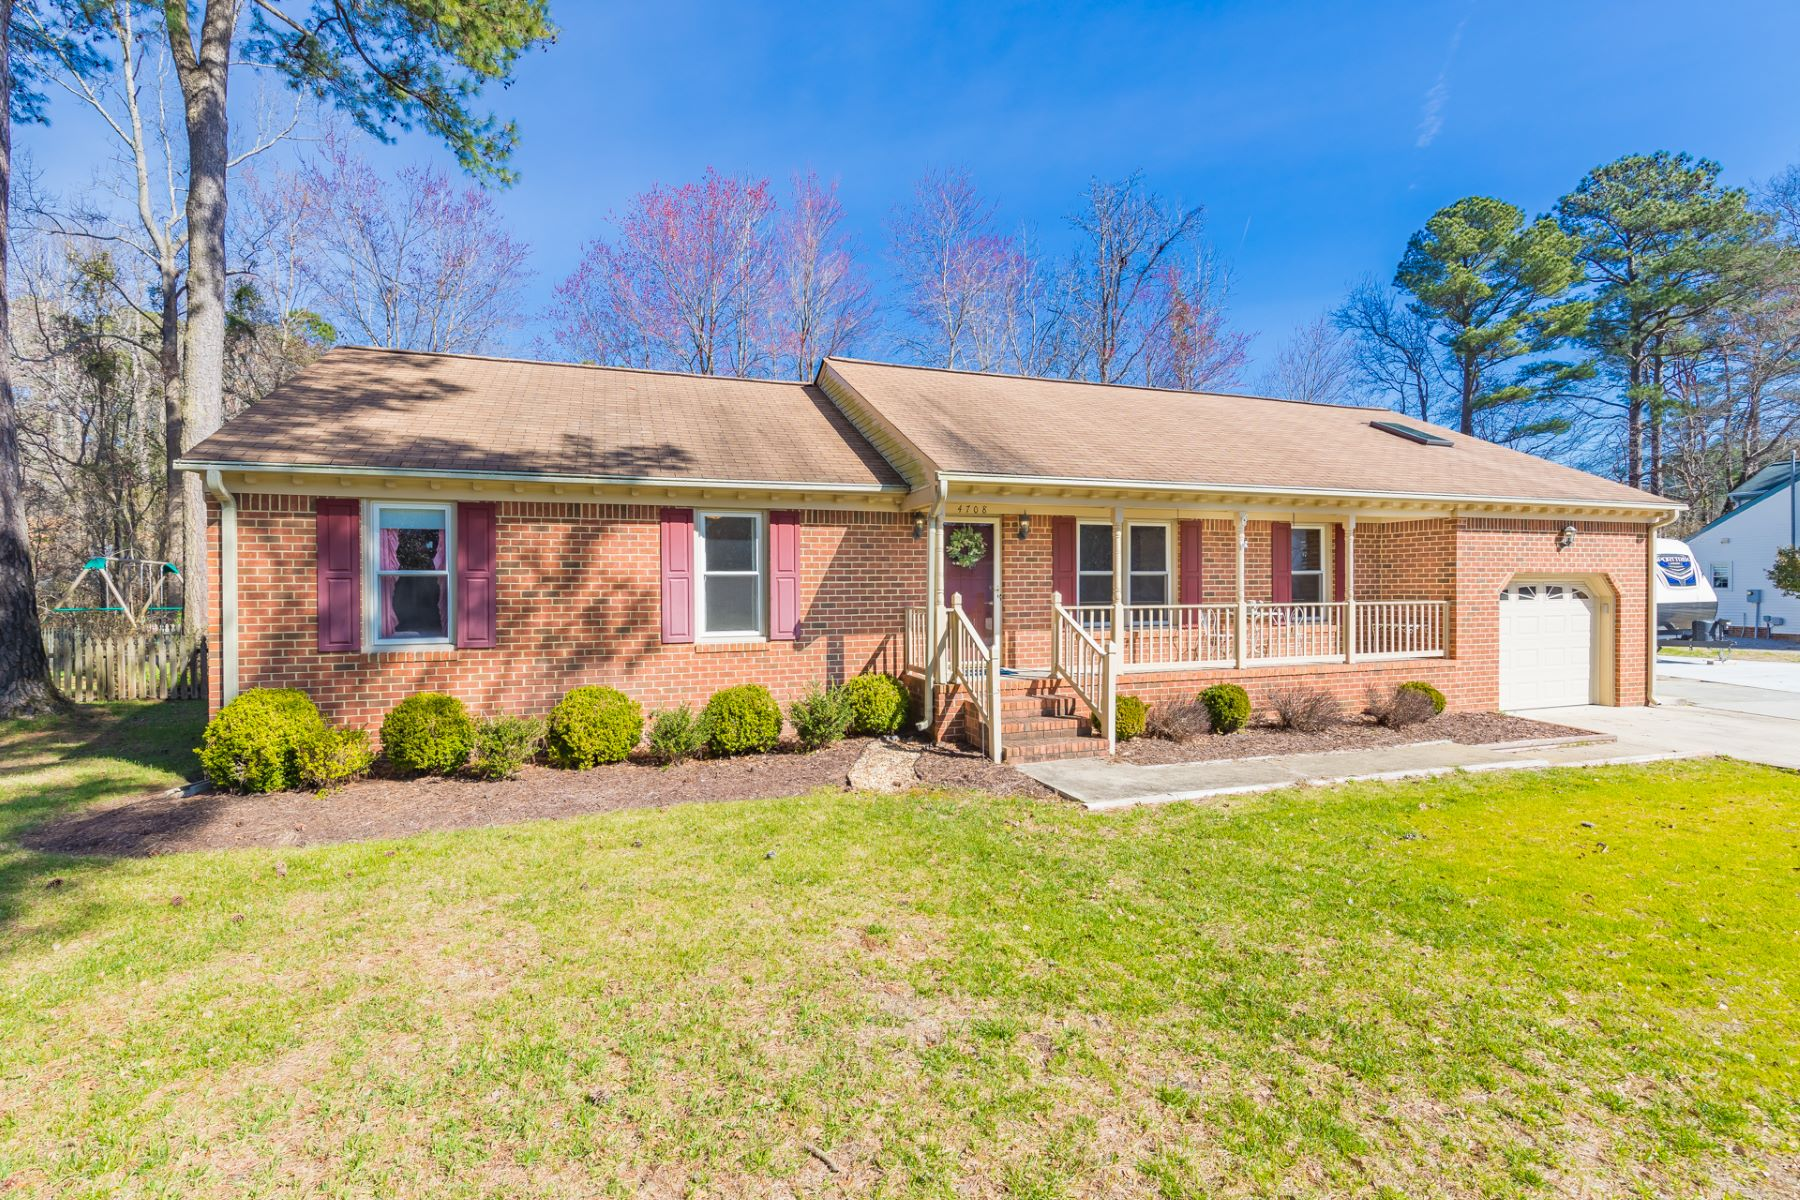 Single Family Home for Sale at Jolliff Woods 4708 Tanager Crossing Chesapeake, Virginia 23321 United States